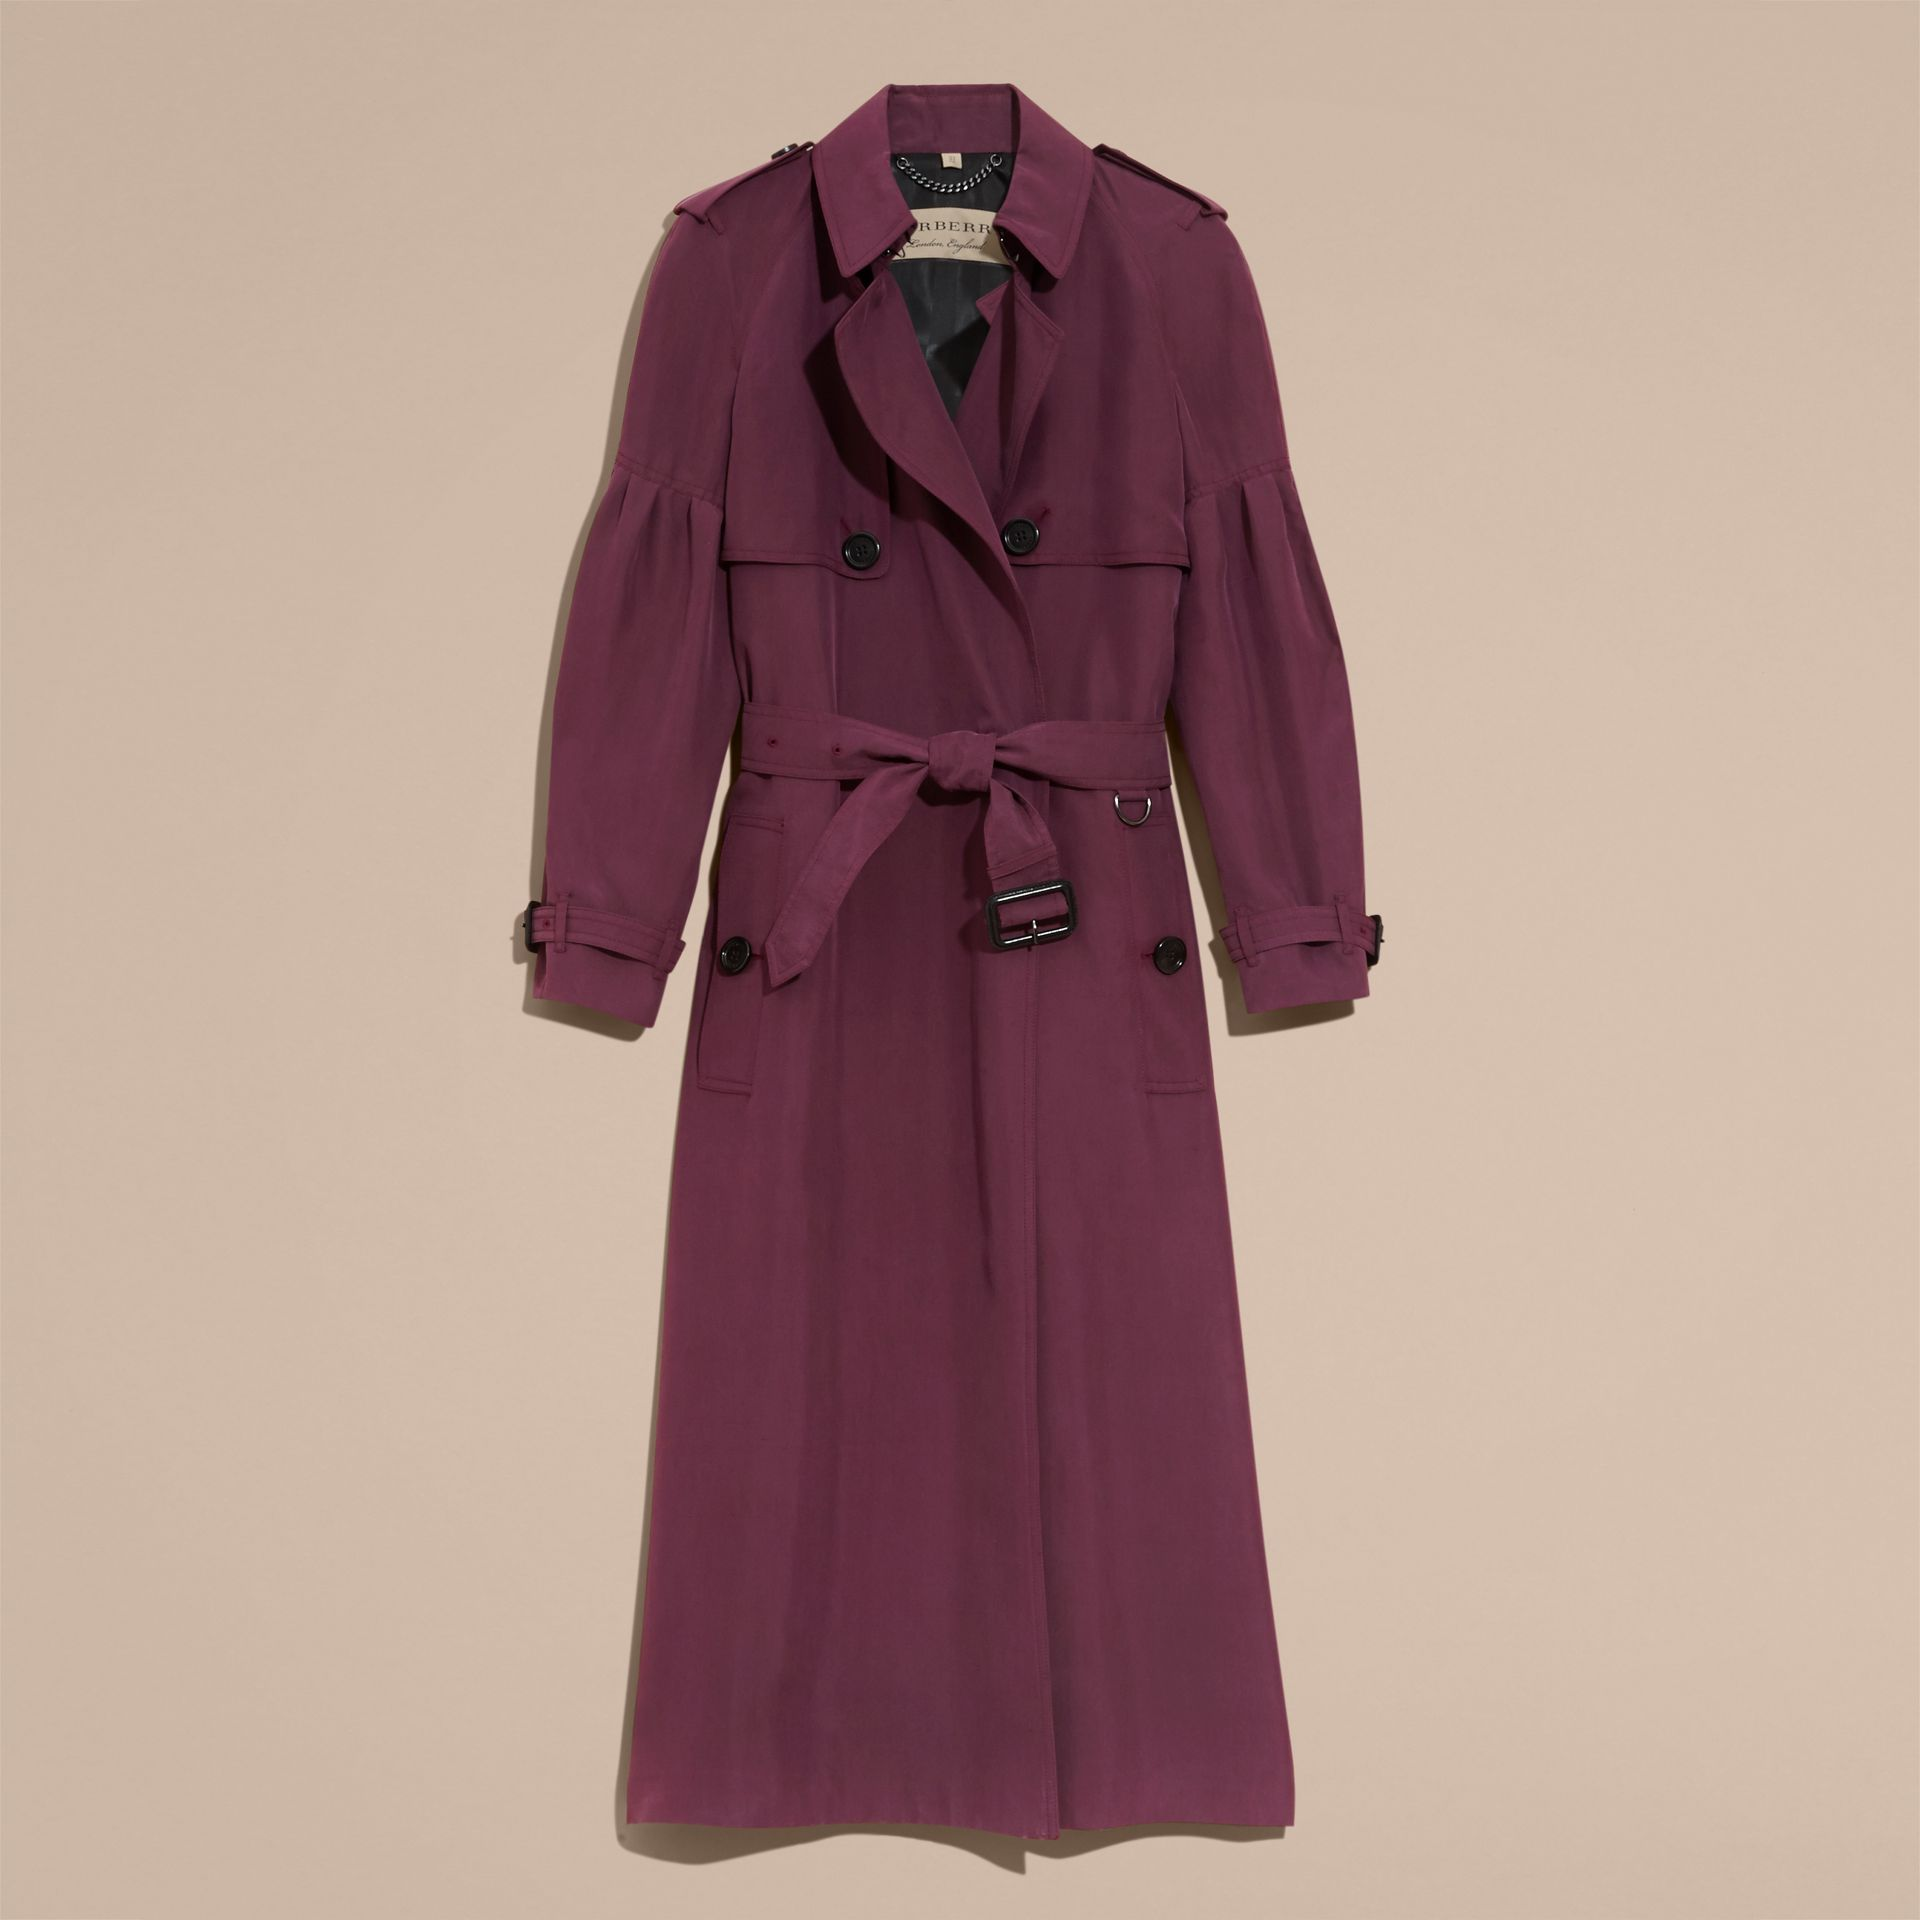 Oversize Silk Trench Coat with Puff Sleeves in Burgundy - Women | Burberry - gallery image 3